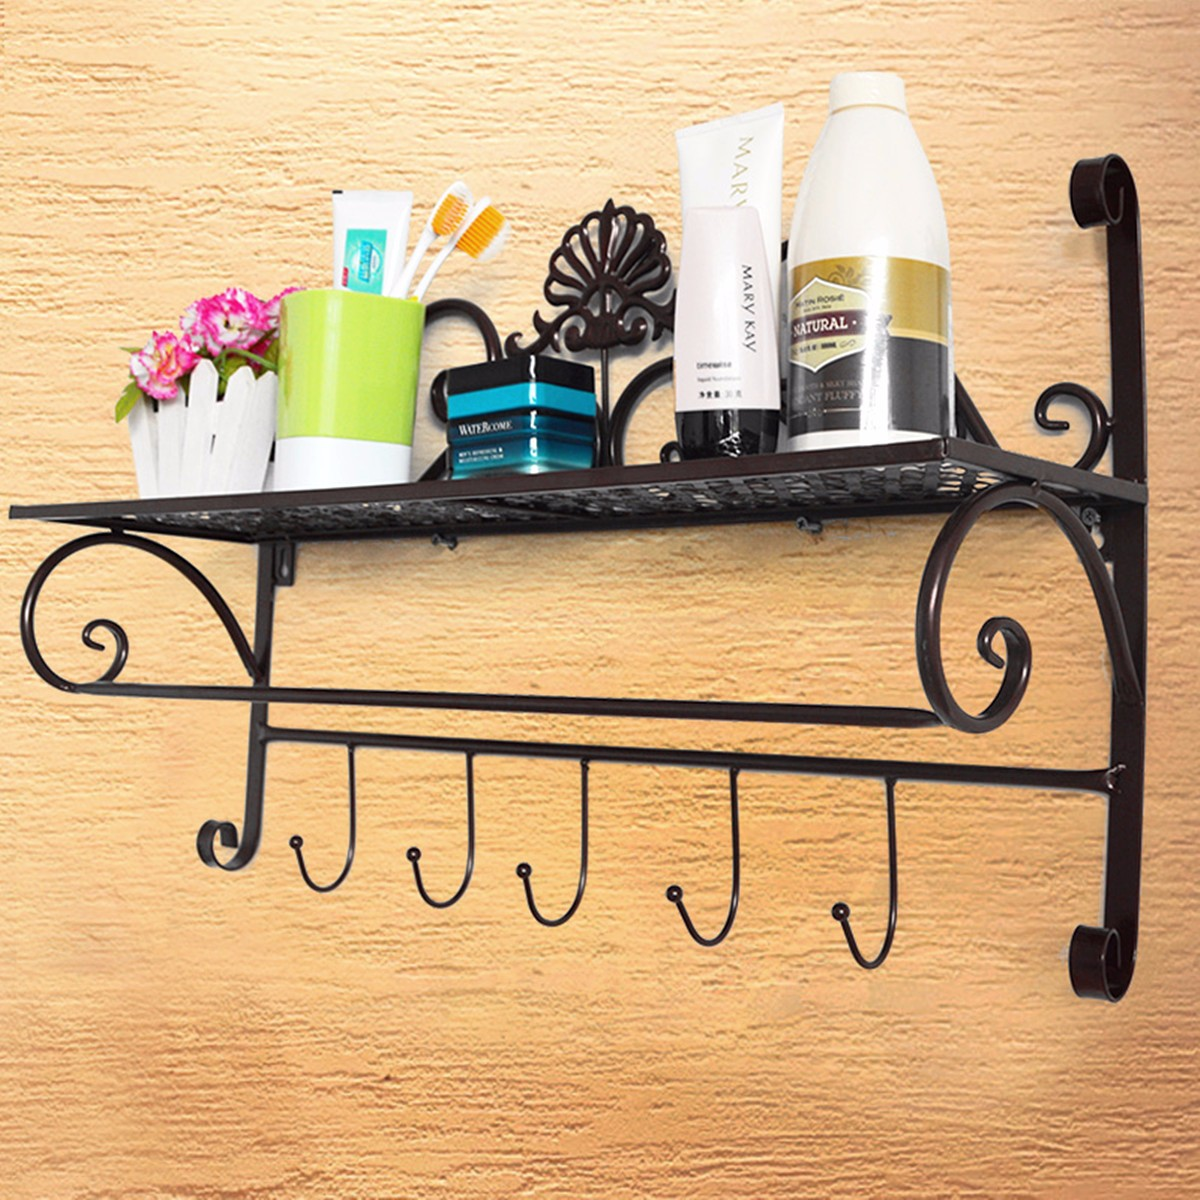 Metal Wall Mounted Shelf Coat Towel Hooks Hanger Rack Storage Holder